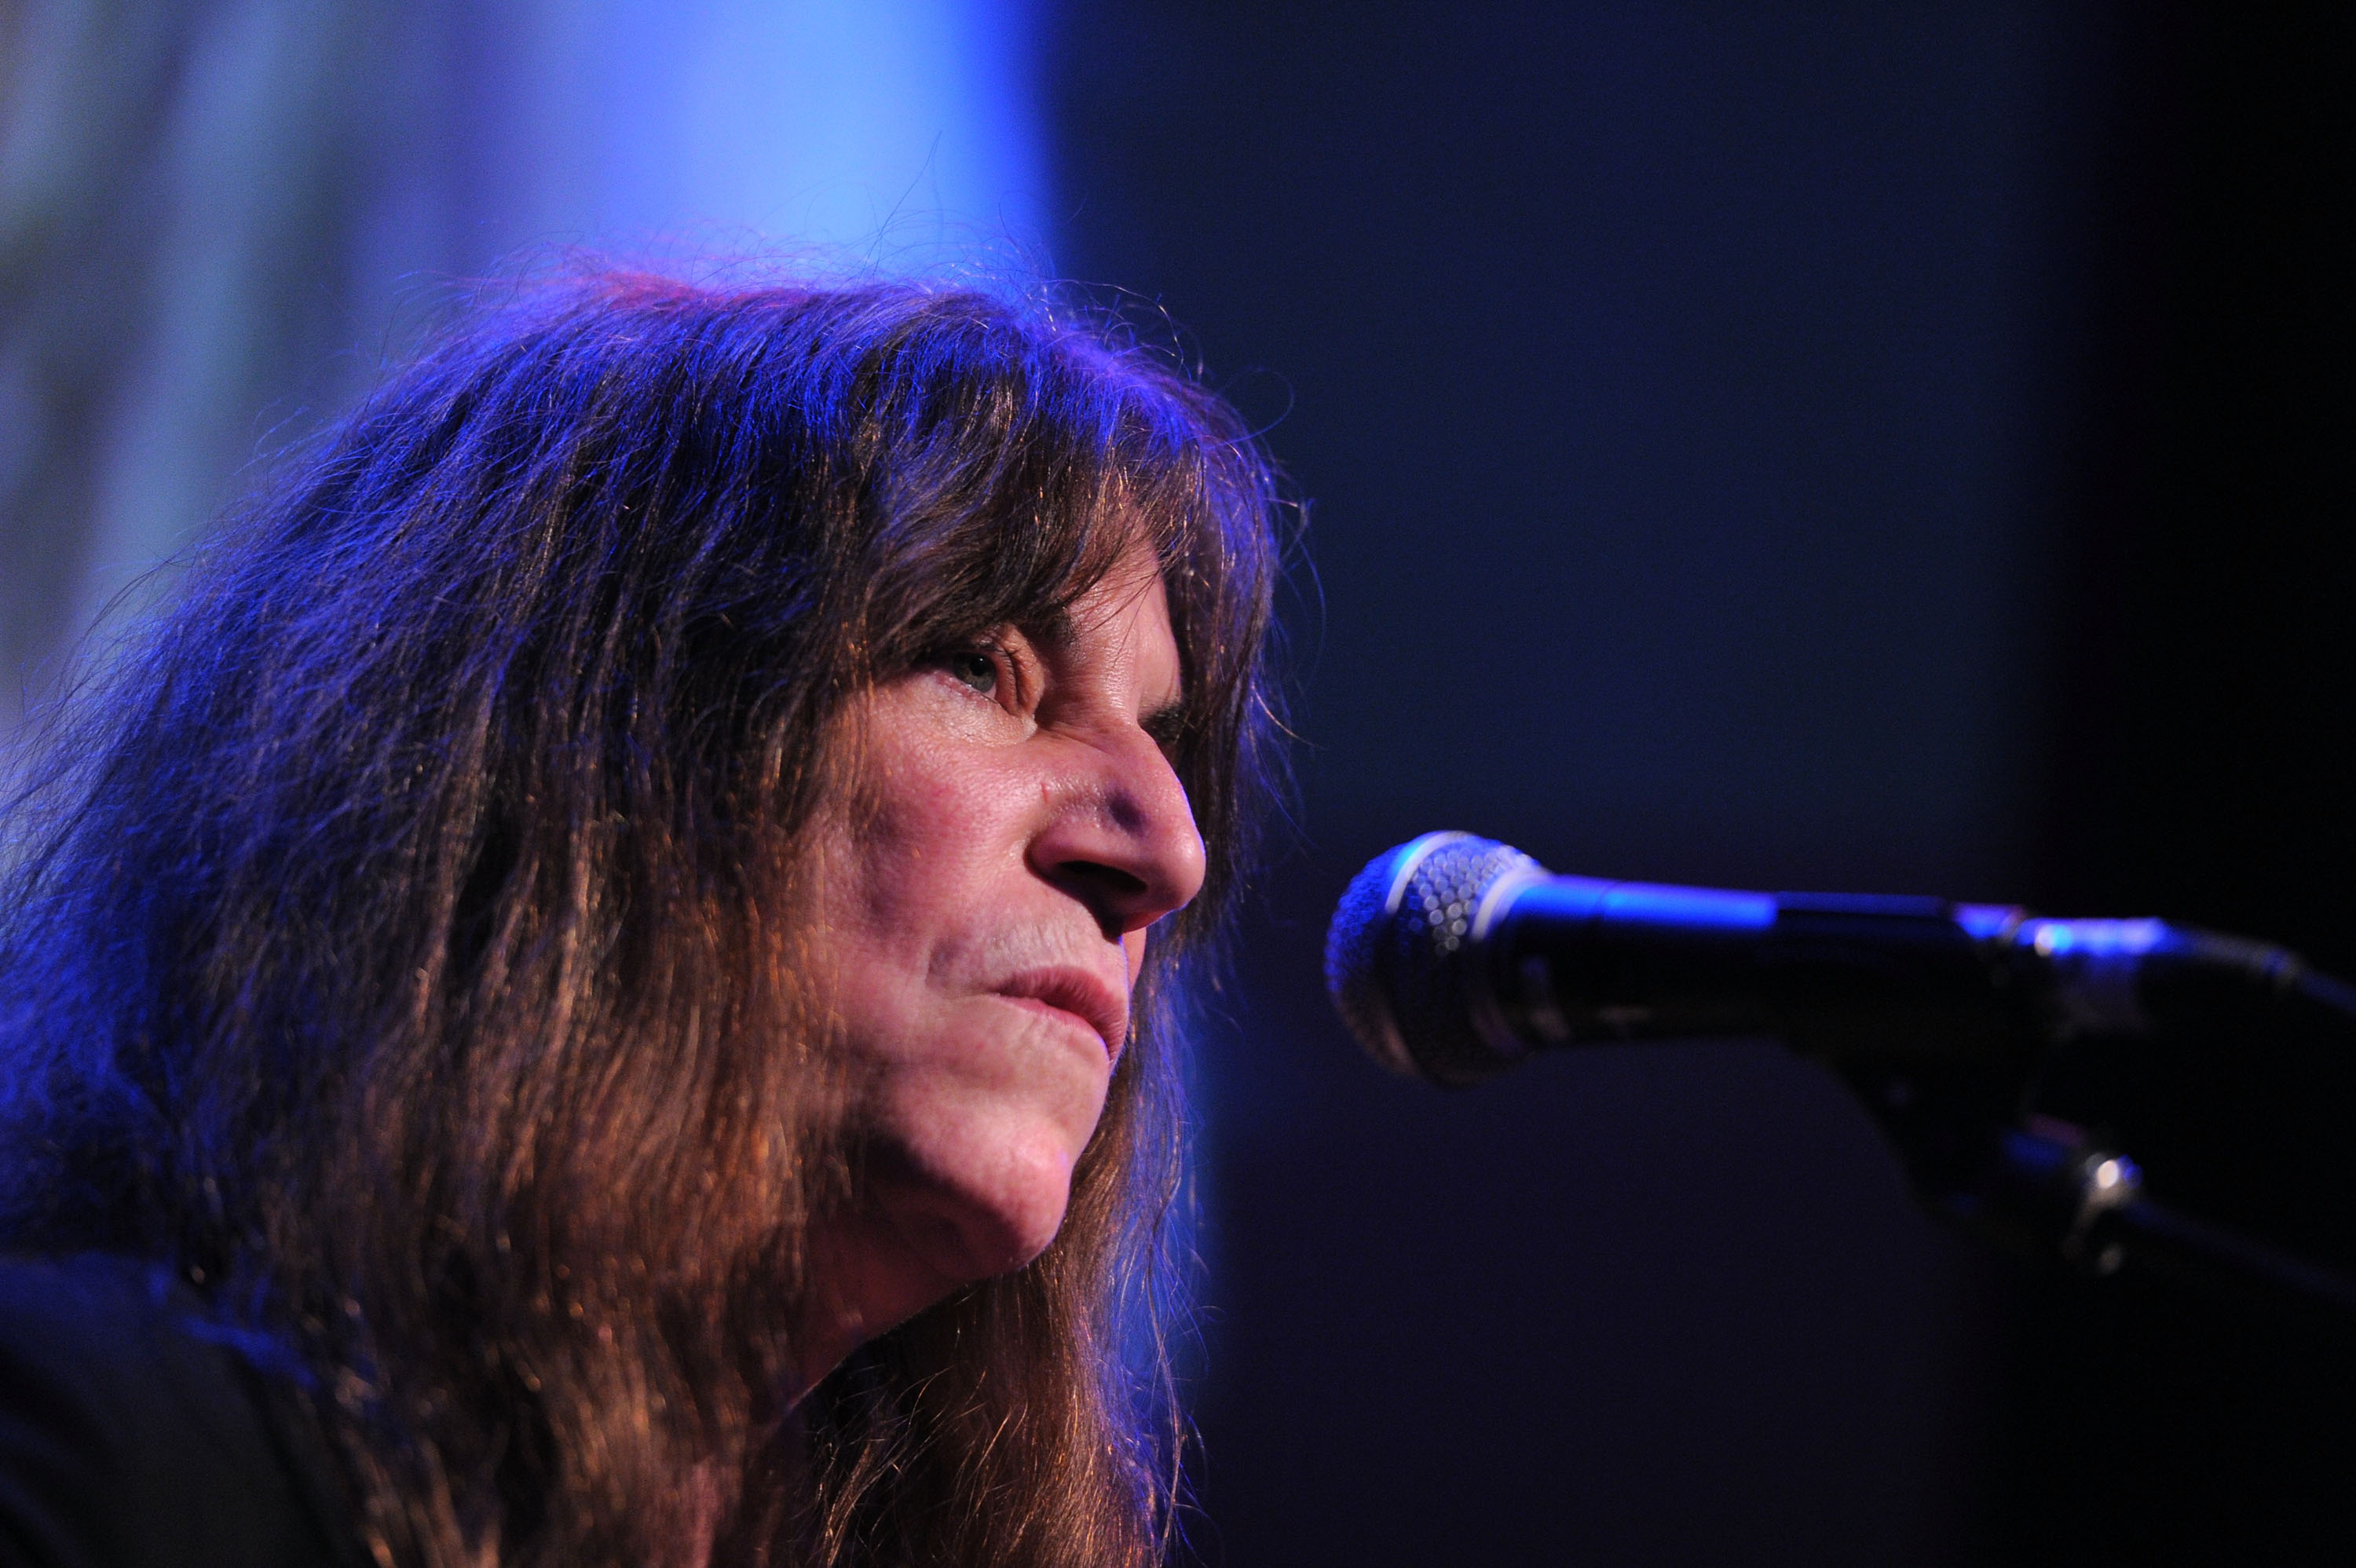 NEW YORK, NY - MAY 17: Musician Patti Smith performs onstage at the 2011 Joyful Heart Foundation Gala at The Museum of Modern Art on May 17, 2011 in New York City. (Photo by Mike Coppola/Getty Images)